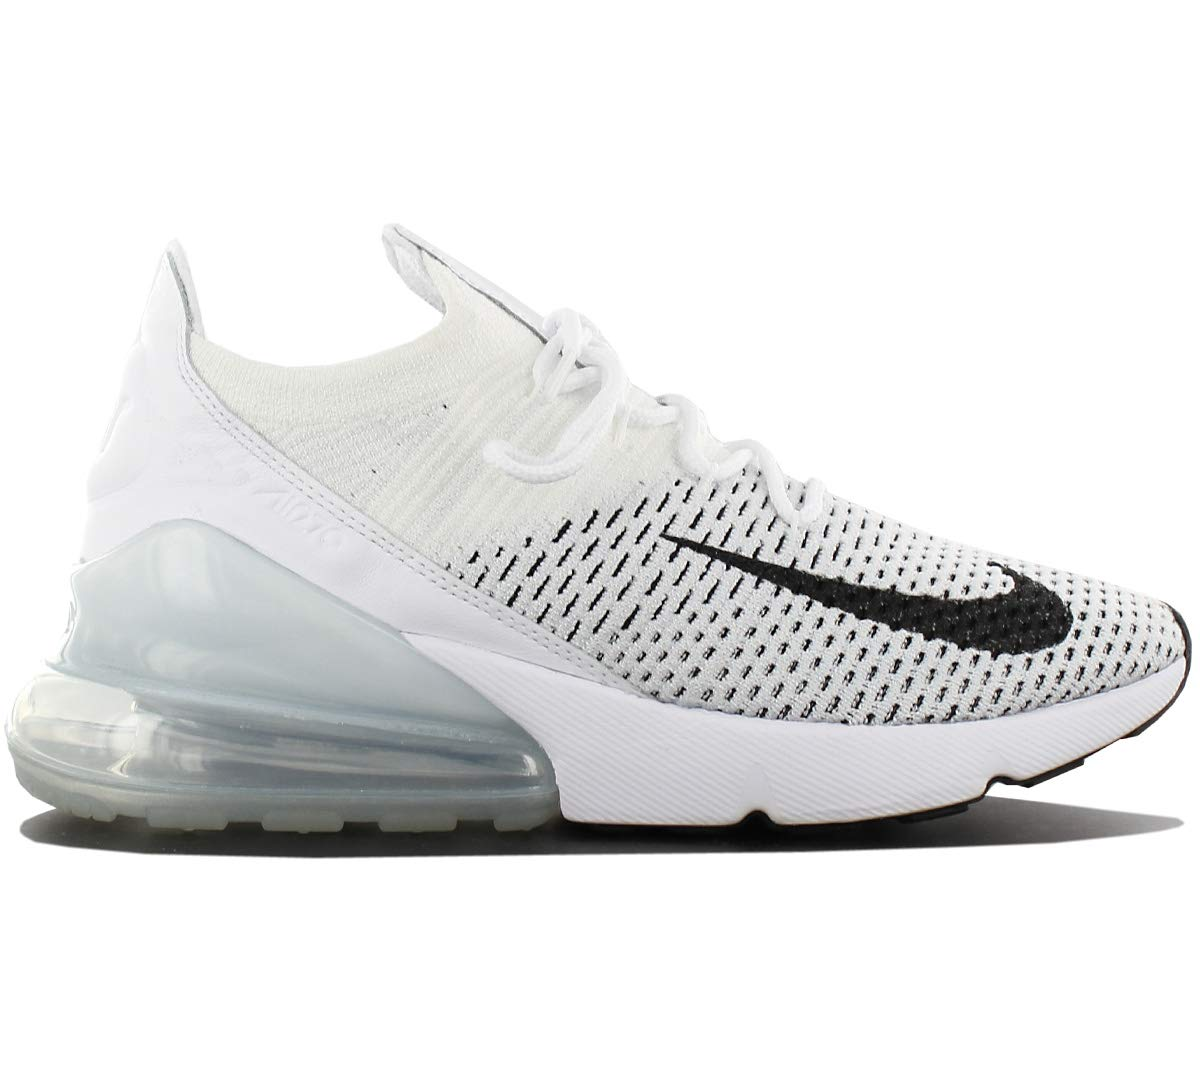 the latest 7a831 8585f Nike Air Max 270 Flyknit Women's Shoes White/Black ah6803-100 (9 B(M) US)